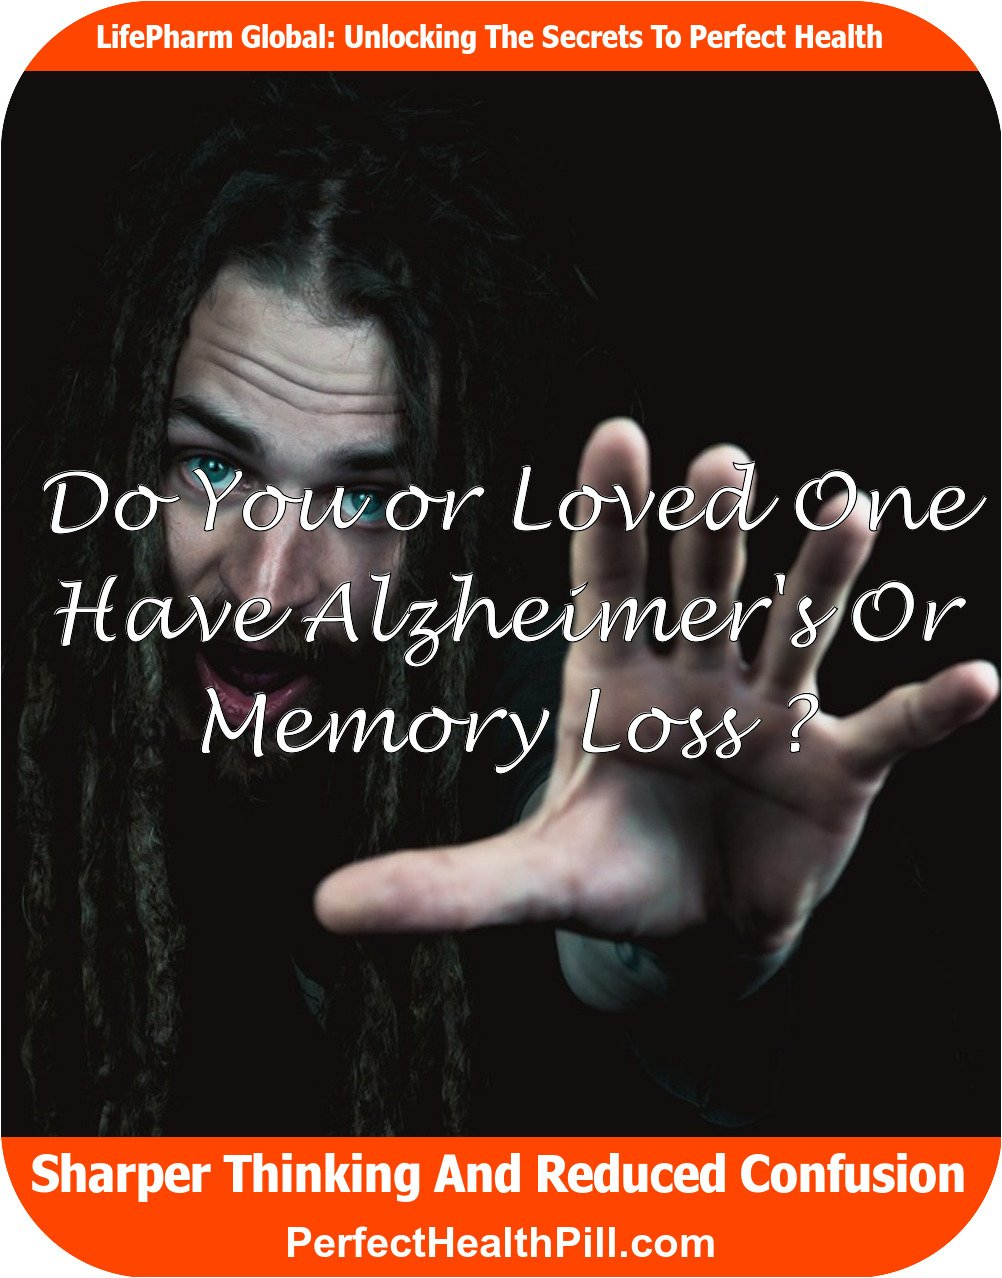 Are You Afraid of Memory Loss?